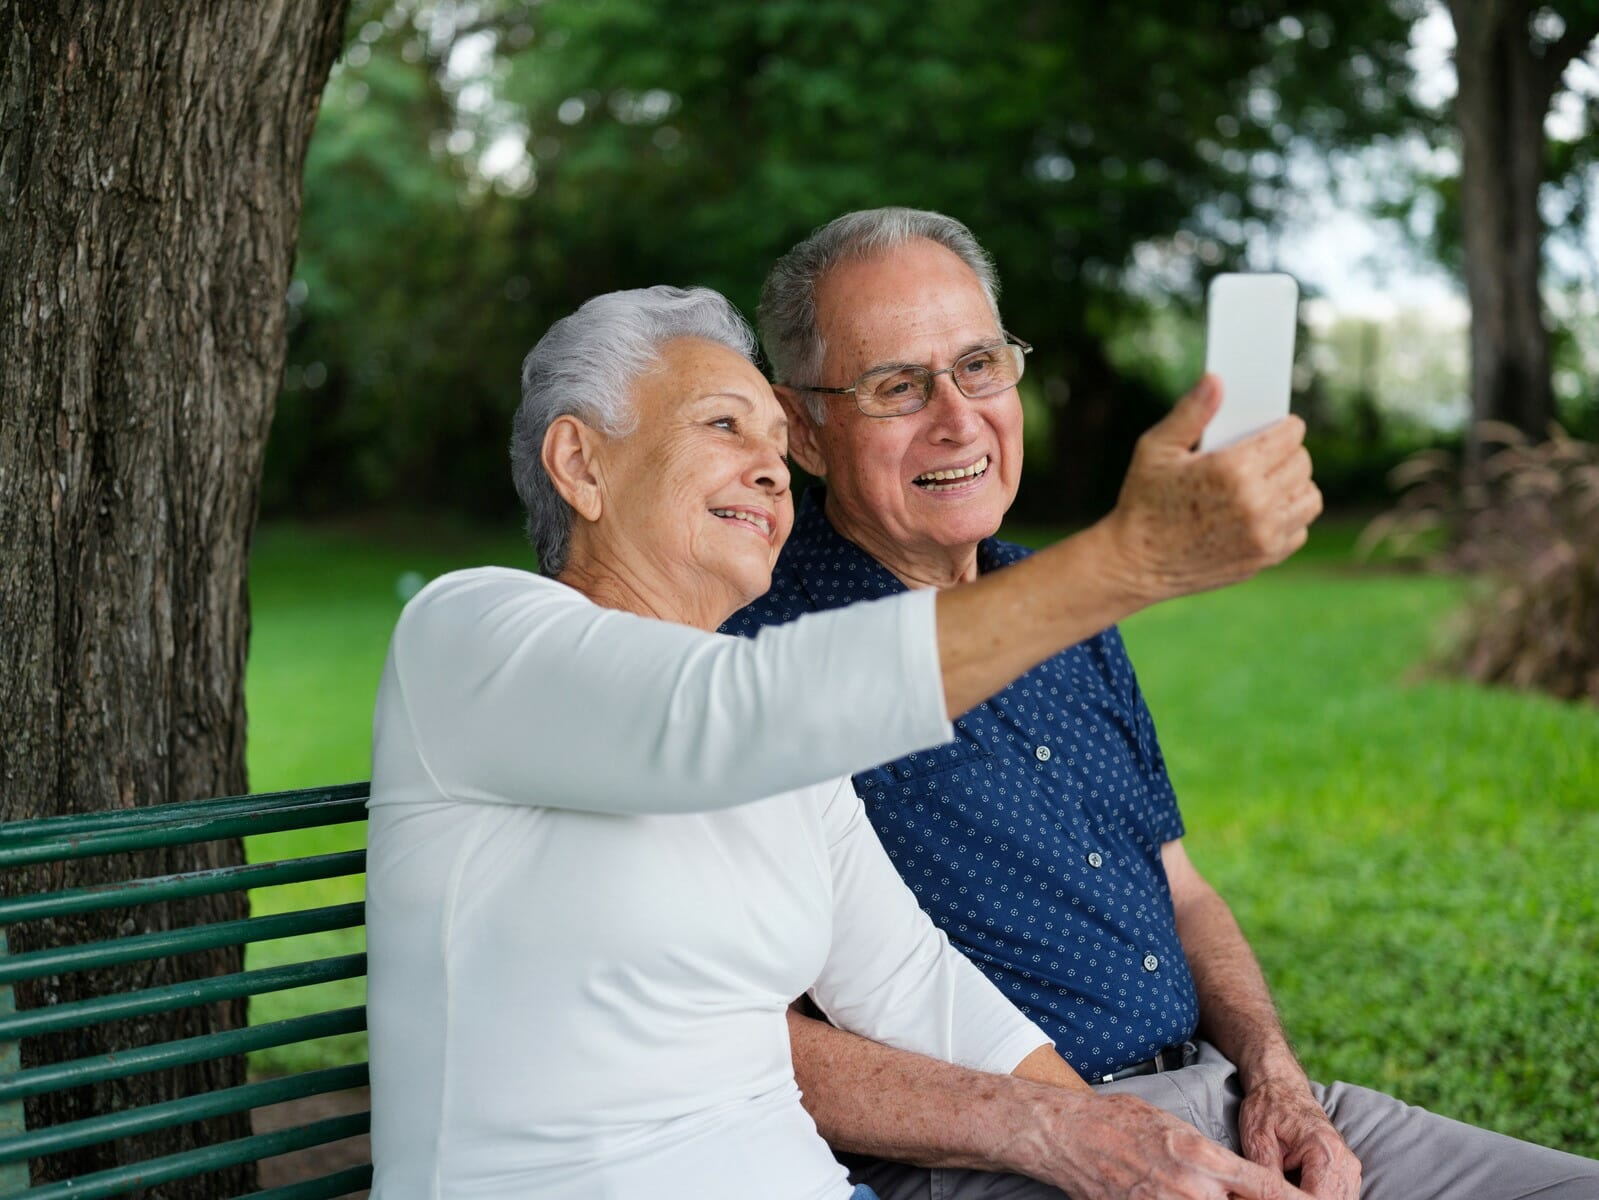 Communication technology helps grandparents stay connected across the miles